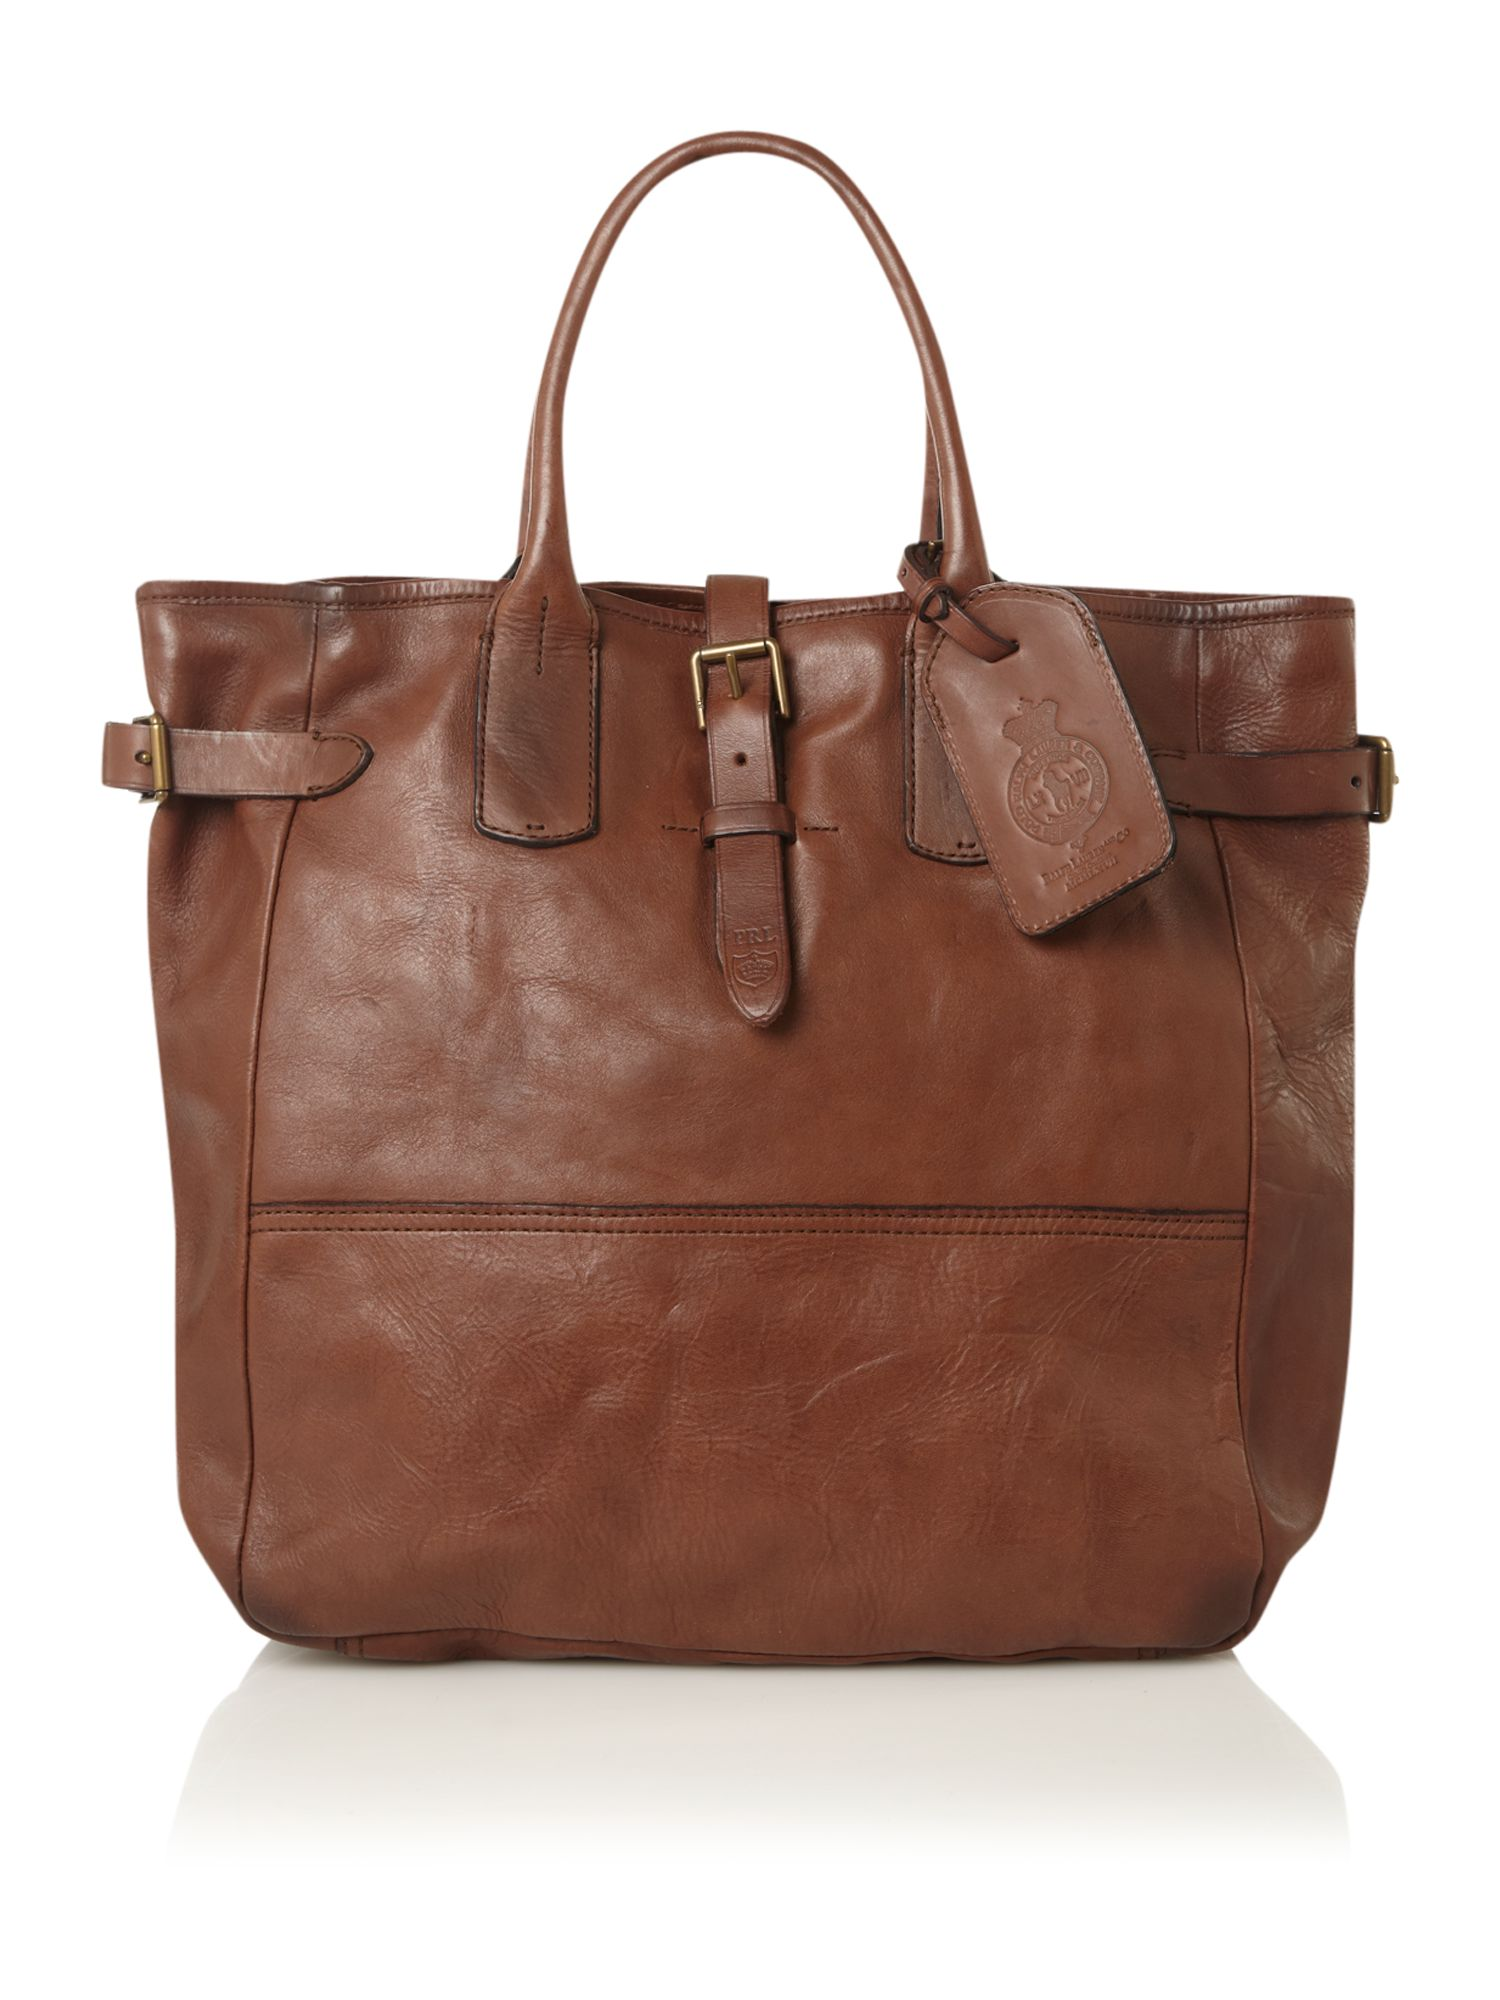 Polo Ralph Lauren Leather Tote Bag, Brown